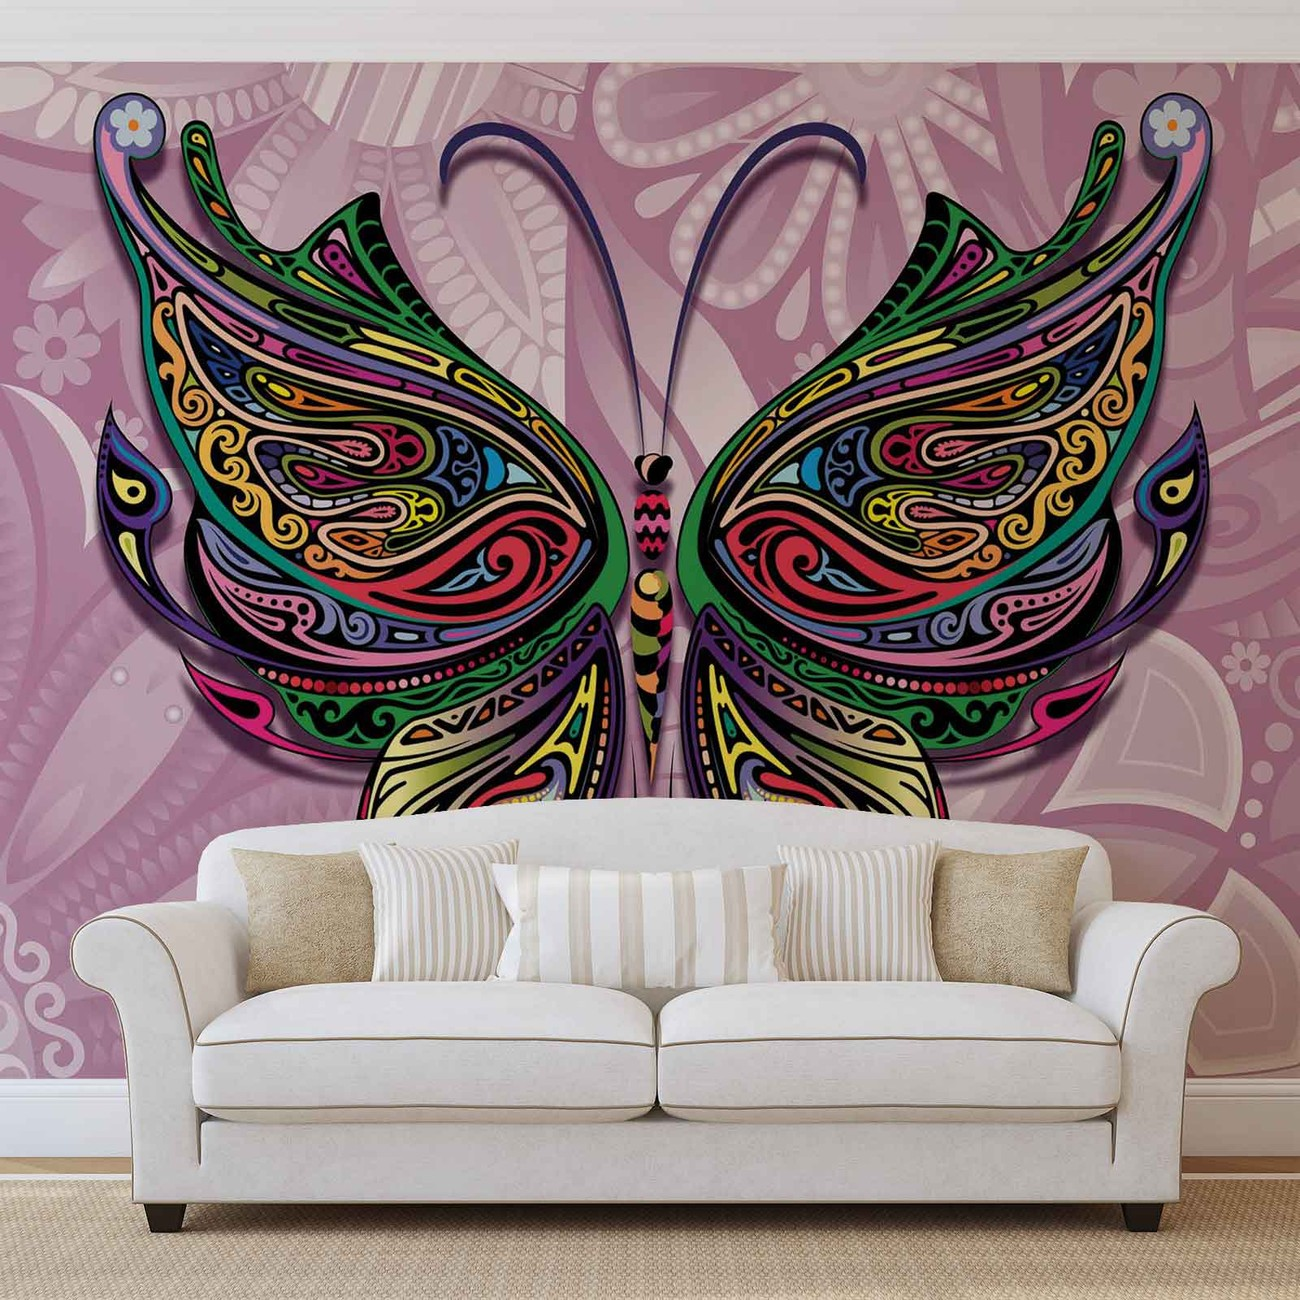 Butterfly flowers abstract colours wall paper mural buy for Butterfly wall mural